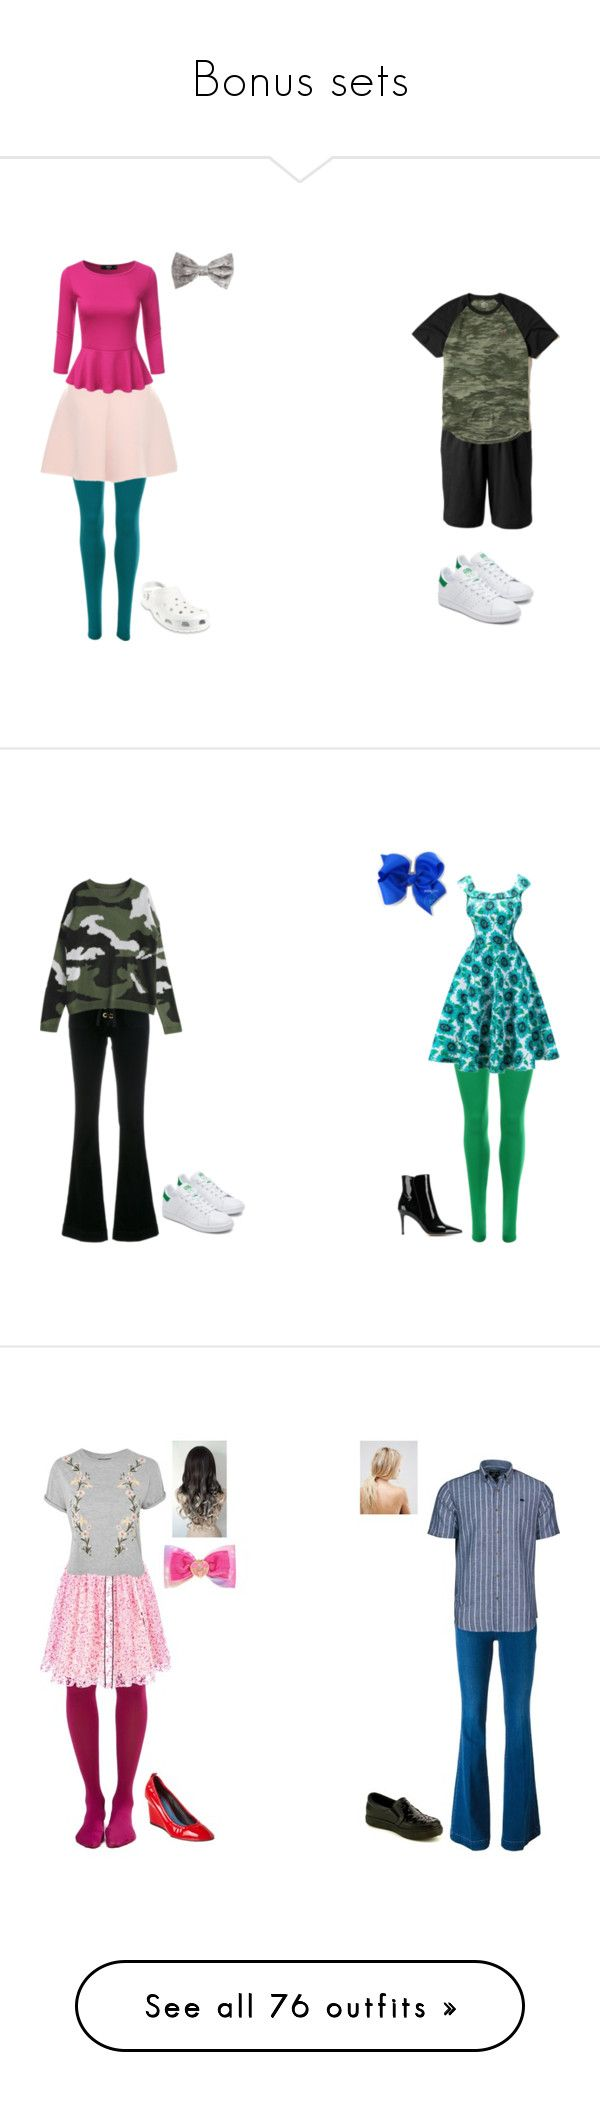 """""""Bonus sets"""" by sierra-ivy on Polyvore featuring WearAll, RED Valentino, Croft & Barrow, Hollister Co., Crocs, The Seafarer, Gianvito Rossi, Jonathan Aston, Fendi and Topshop"""